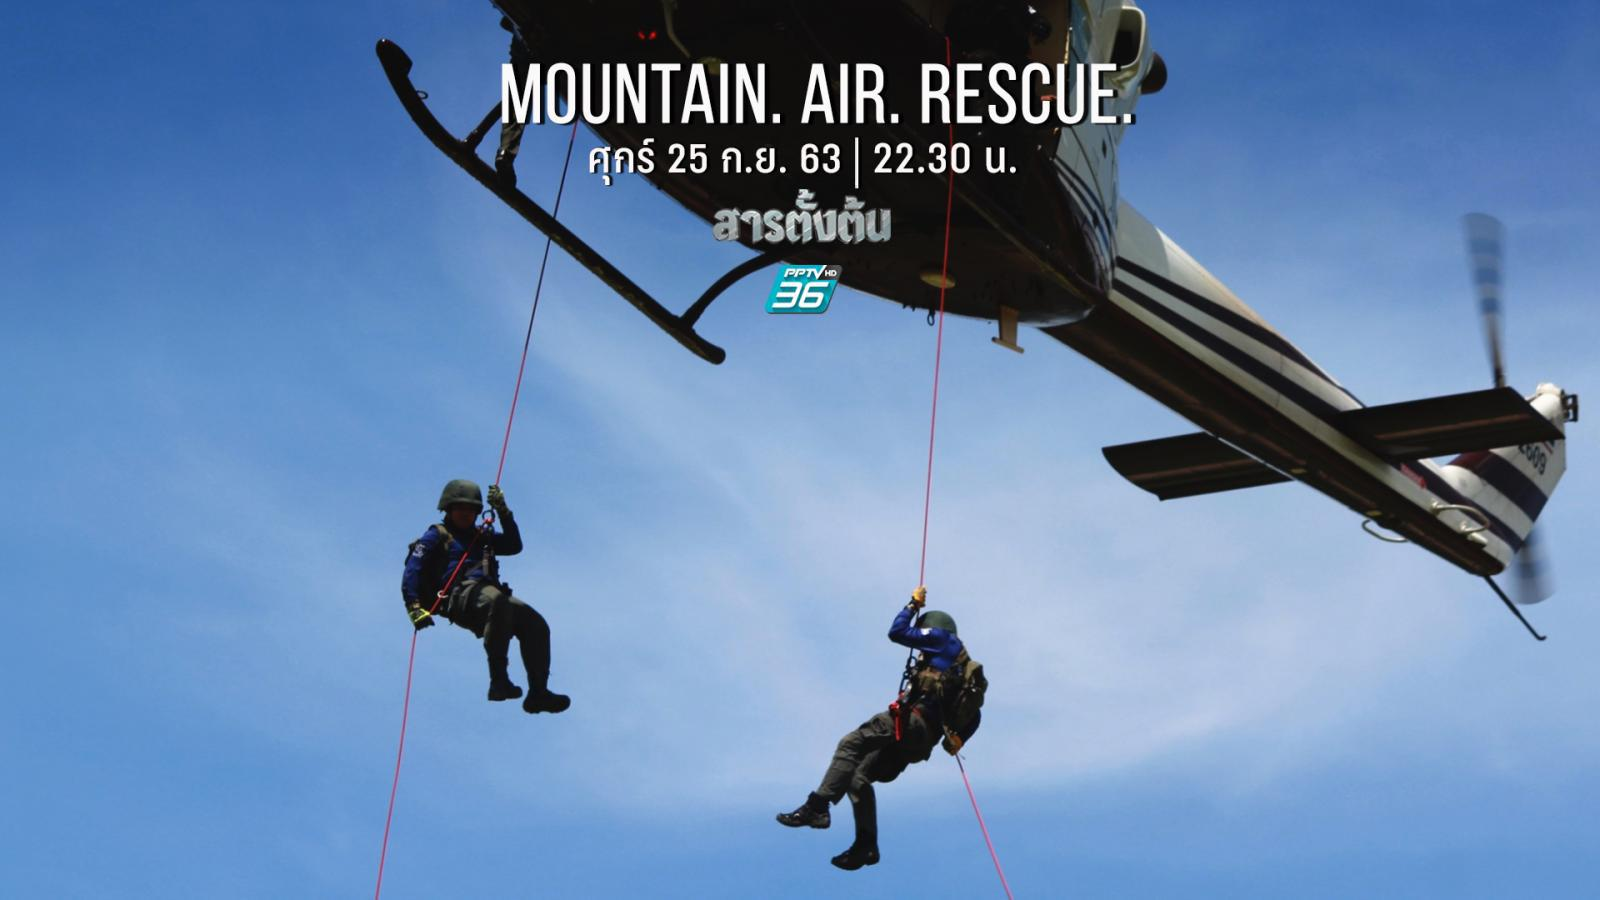 Mountain Air Rescue